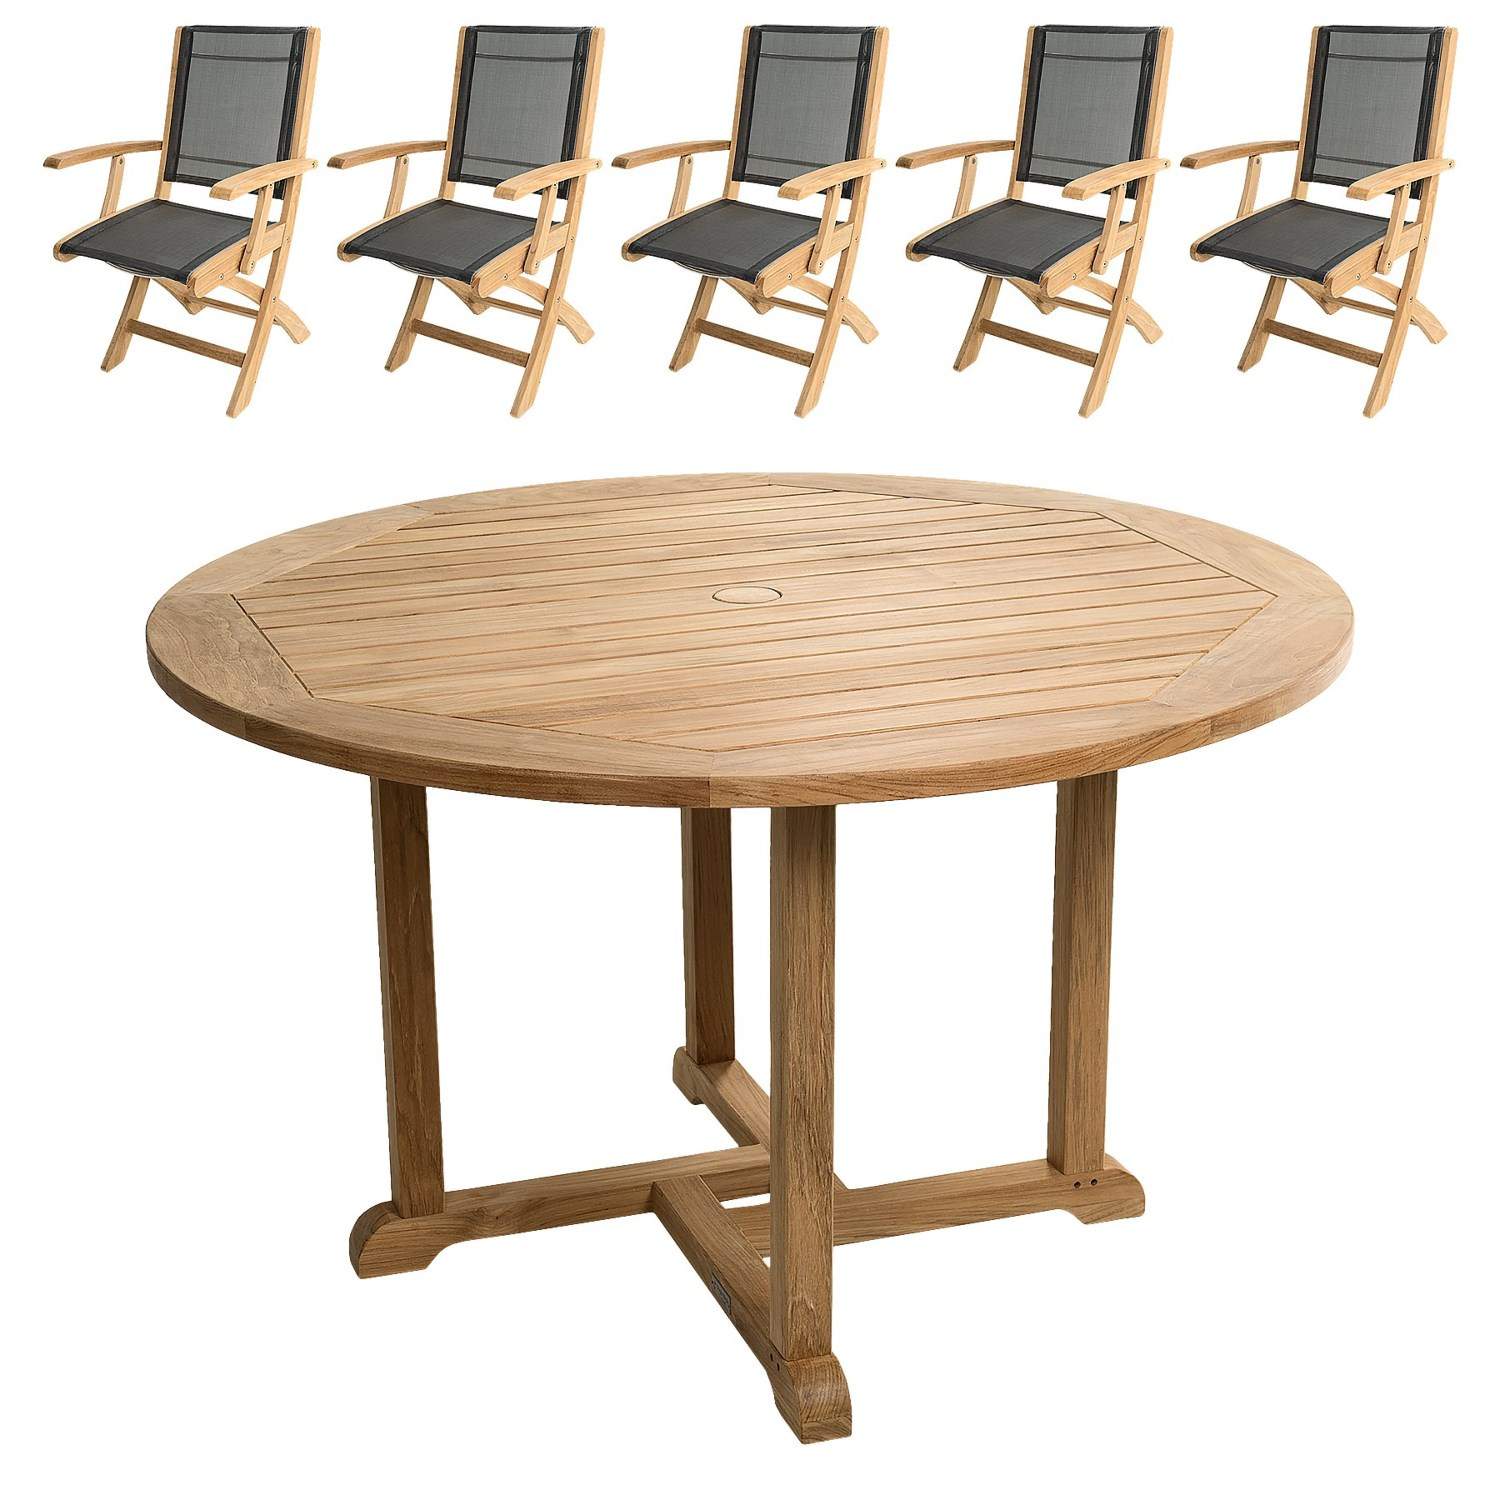 "Round Table And Chairs For 6: Three Birds Casual Premium Teak Oxford 48"" Round Dining"